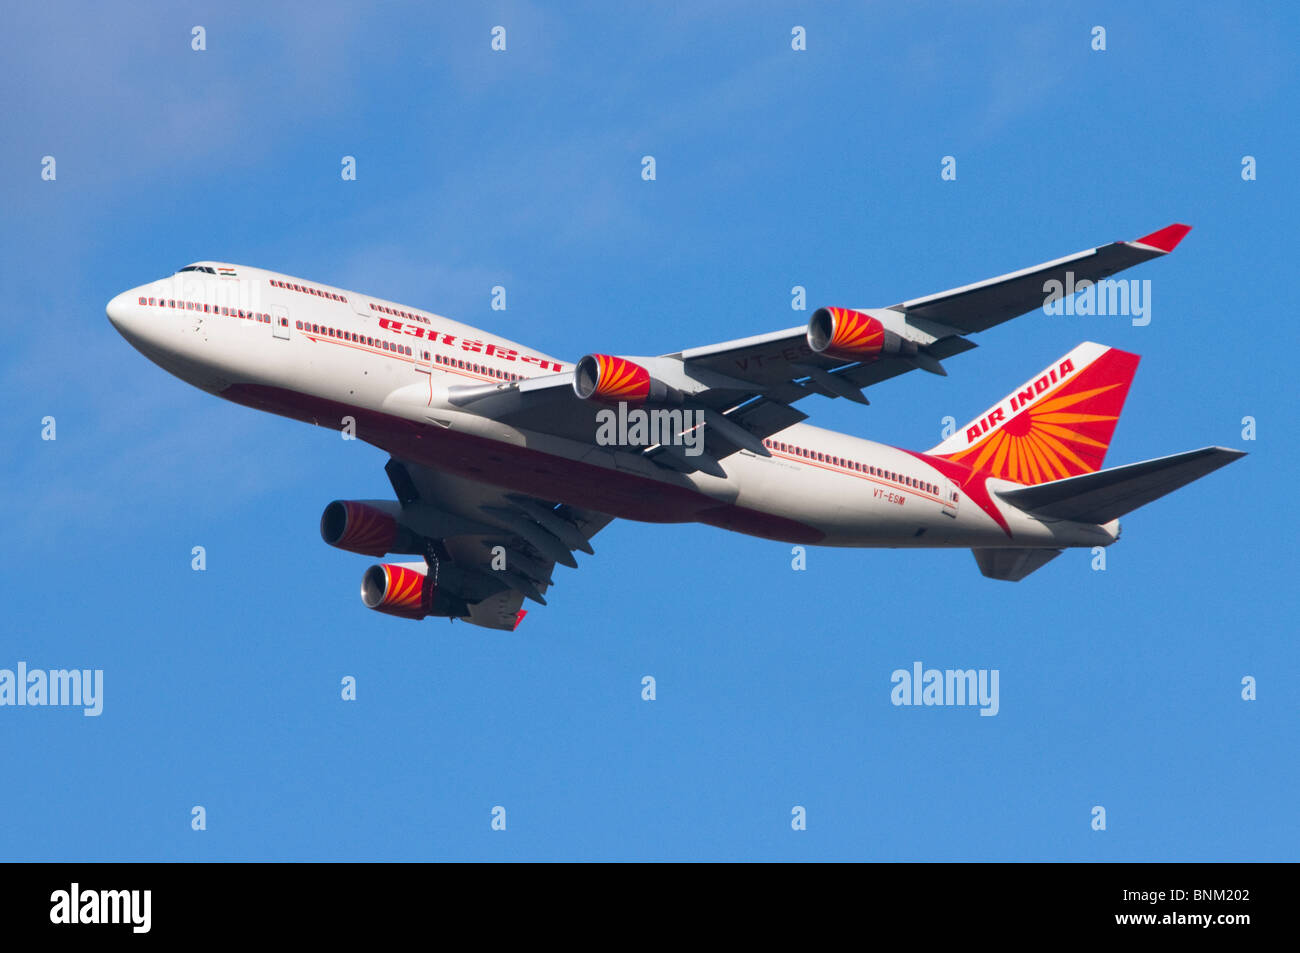 Air India Boeing 747 jumbo jet climbing out from take off at London Heathrow Airport, UK. Stock Photo